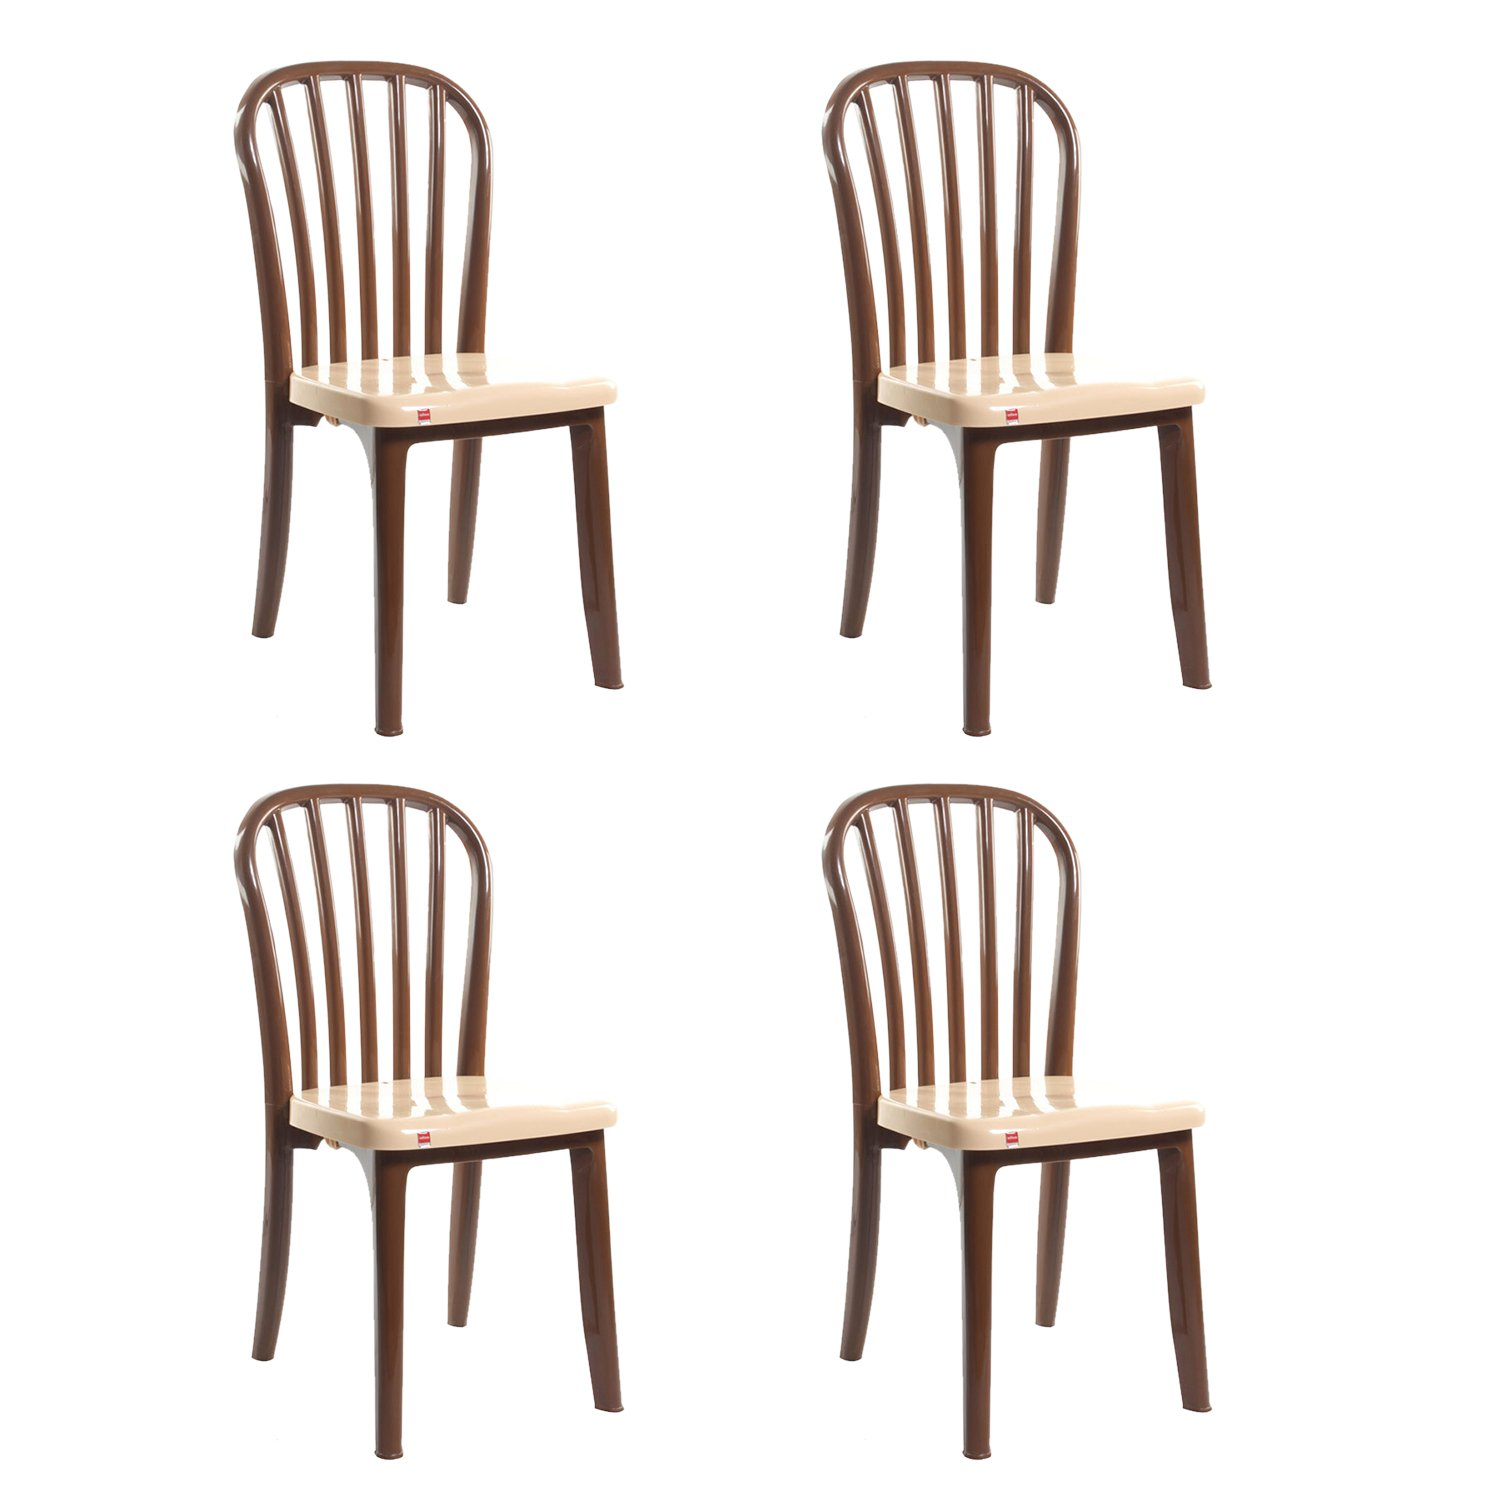 Cello Decent Delux Set of 4 Chairs Black Amazon Home & Kitchen